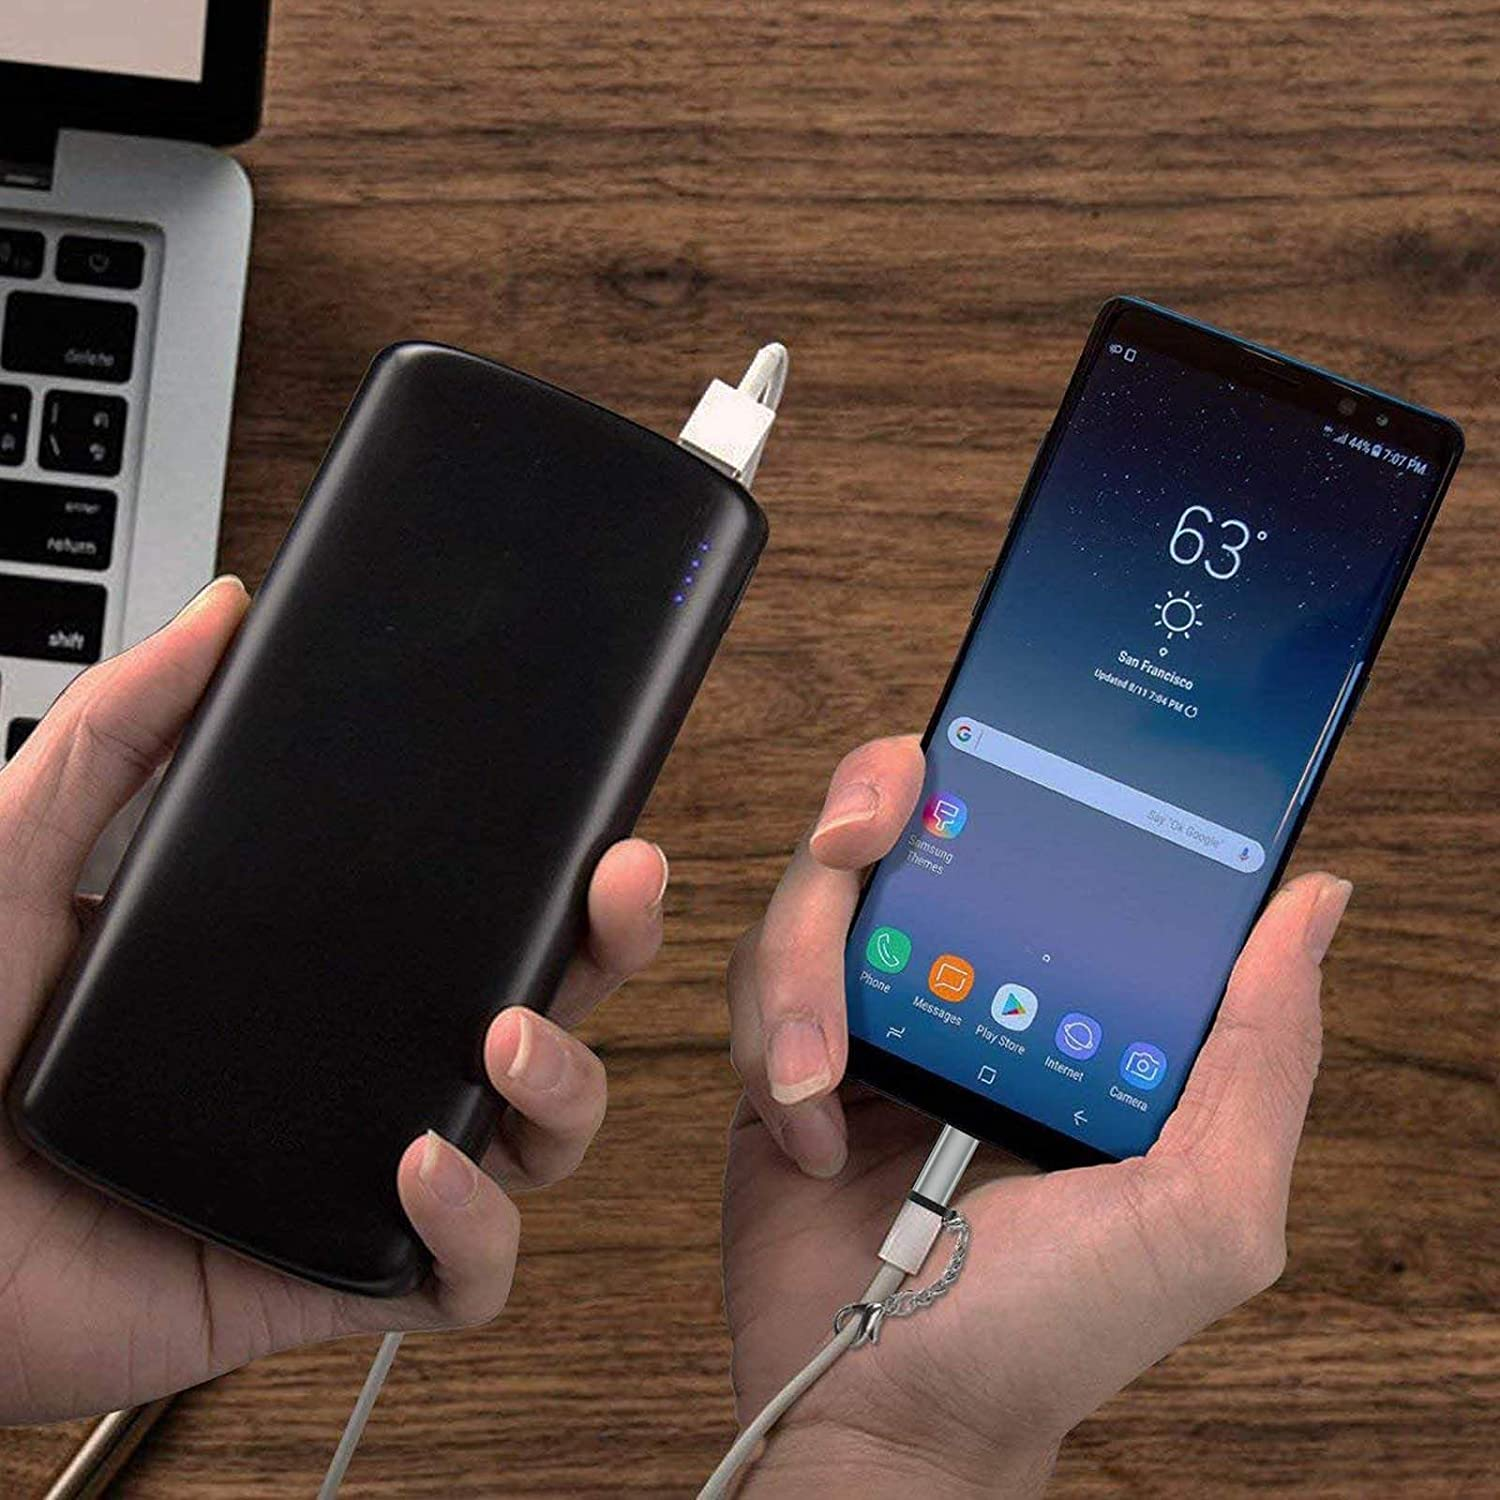 Google Pixel 2 XL and More Uses 56K Resistor 5-Pack MacBook S9+ 8 S9 Yellowknife Micro USB to USB C Adapter Works with Galaxy Note 9 Converts Micro USB Female to USB C Male